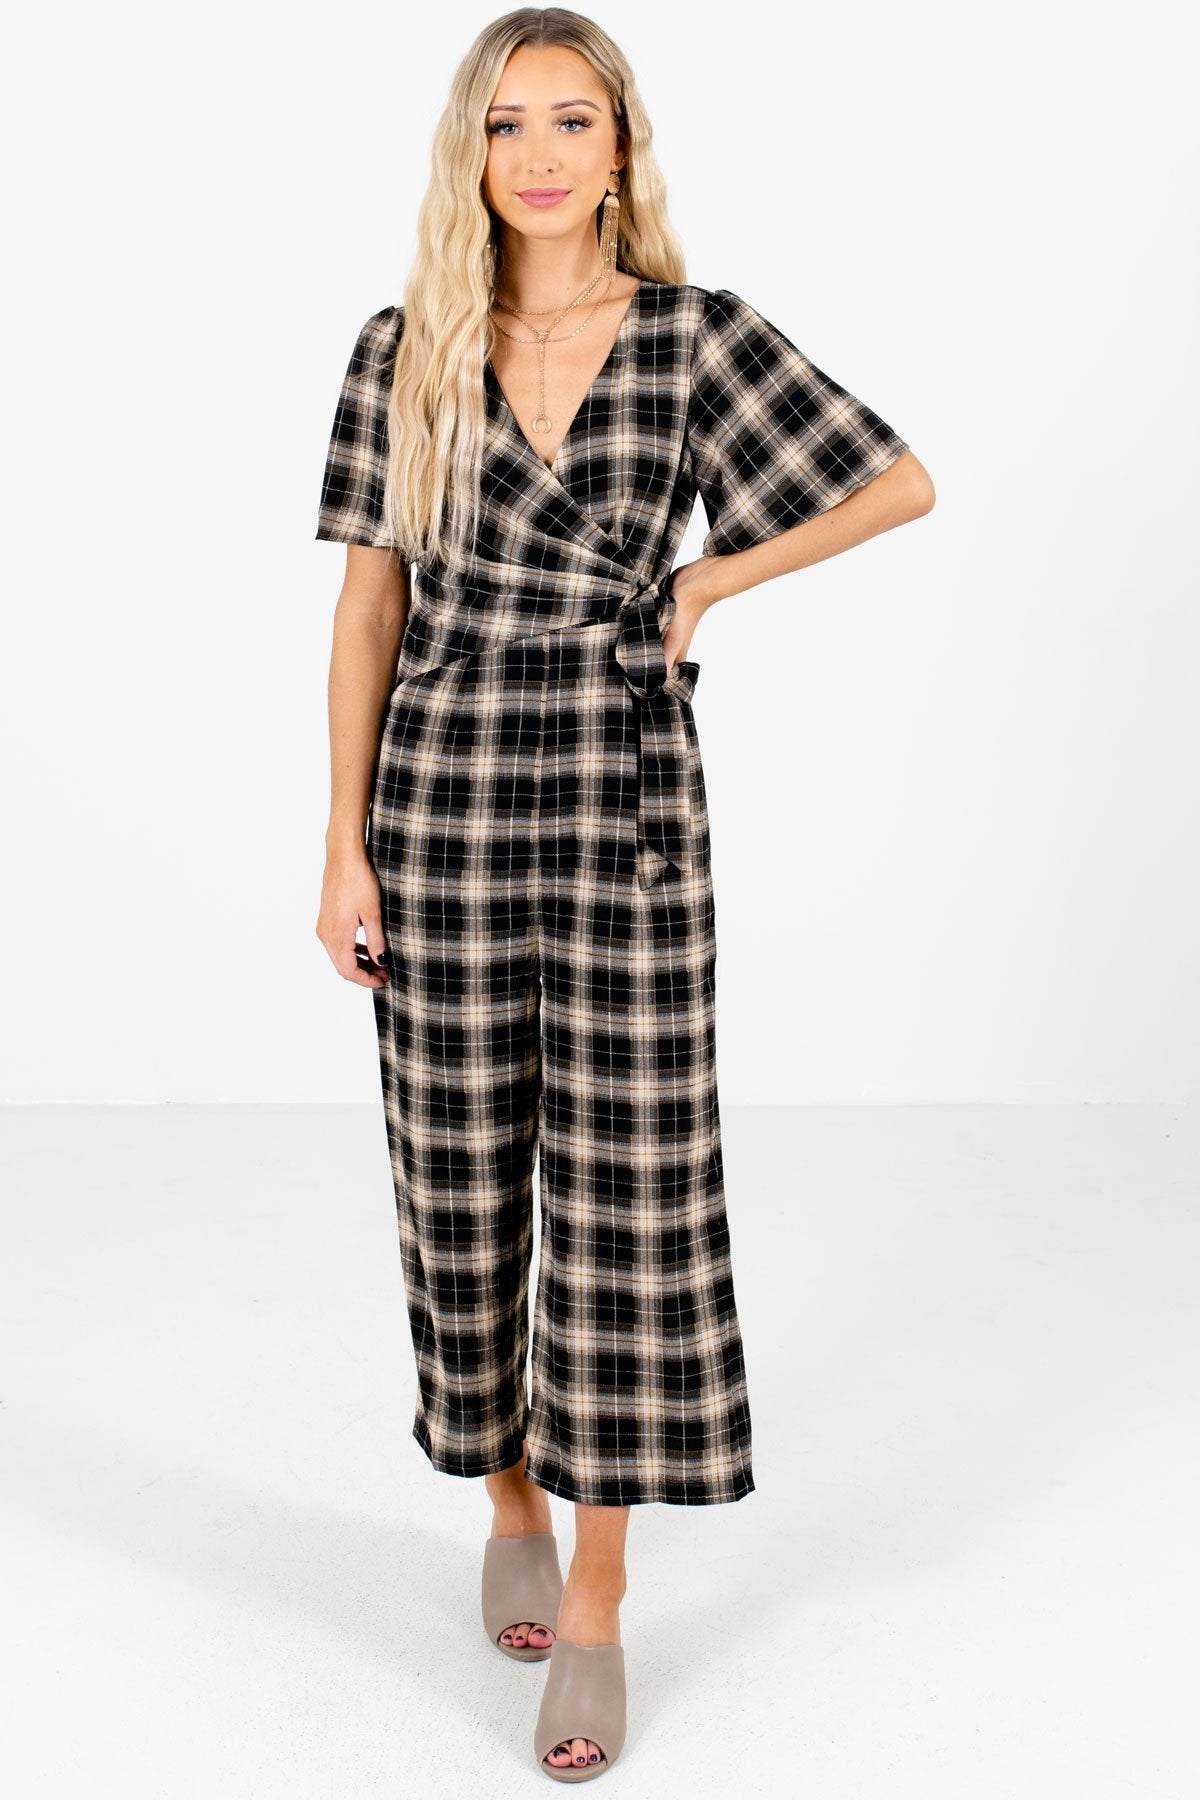 Black Multicolored Plaid Patterned Boutique Jumpsuits for Women